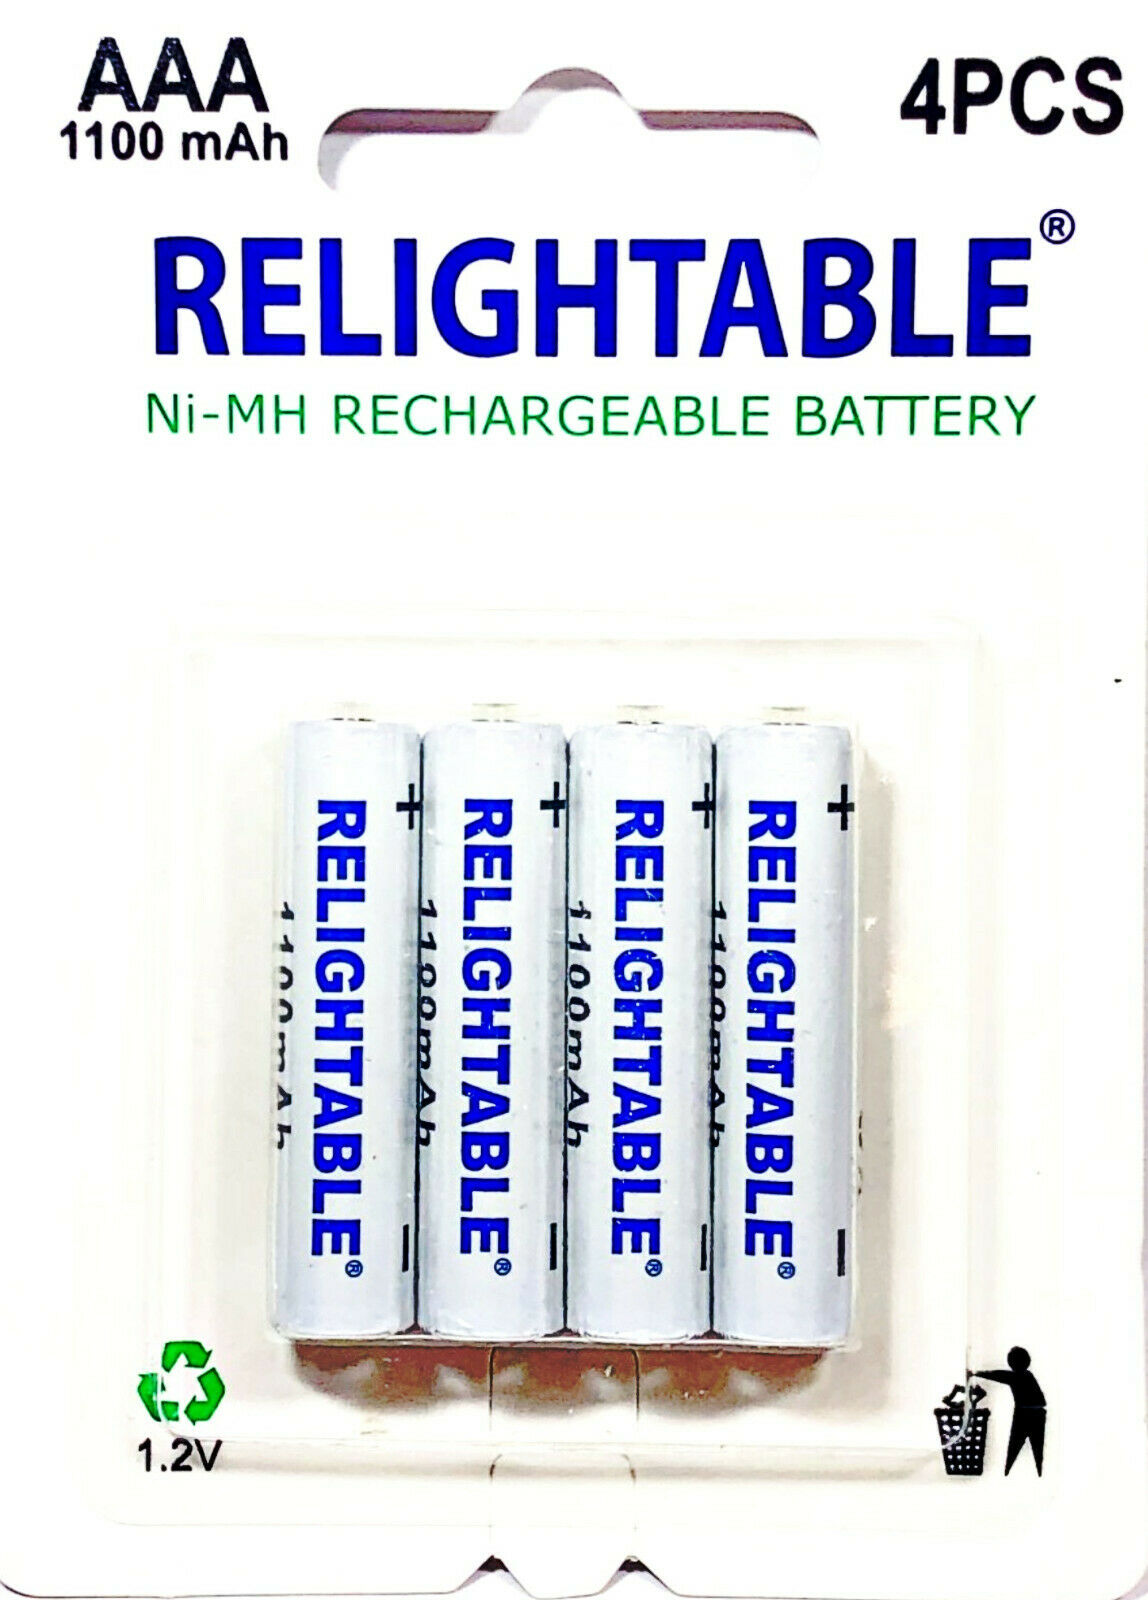 RELIGHTABLE 4-PACK AAA 1100mAh 1.2V Ni-MH Rechargeable Batteries Ready2Use Y4